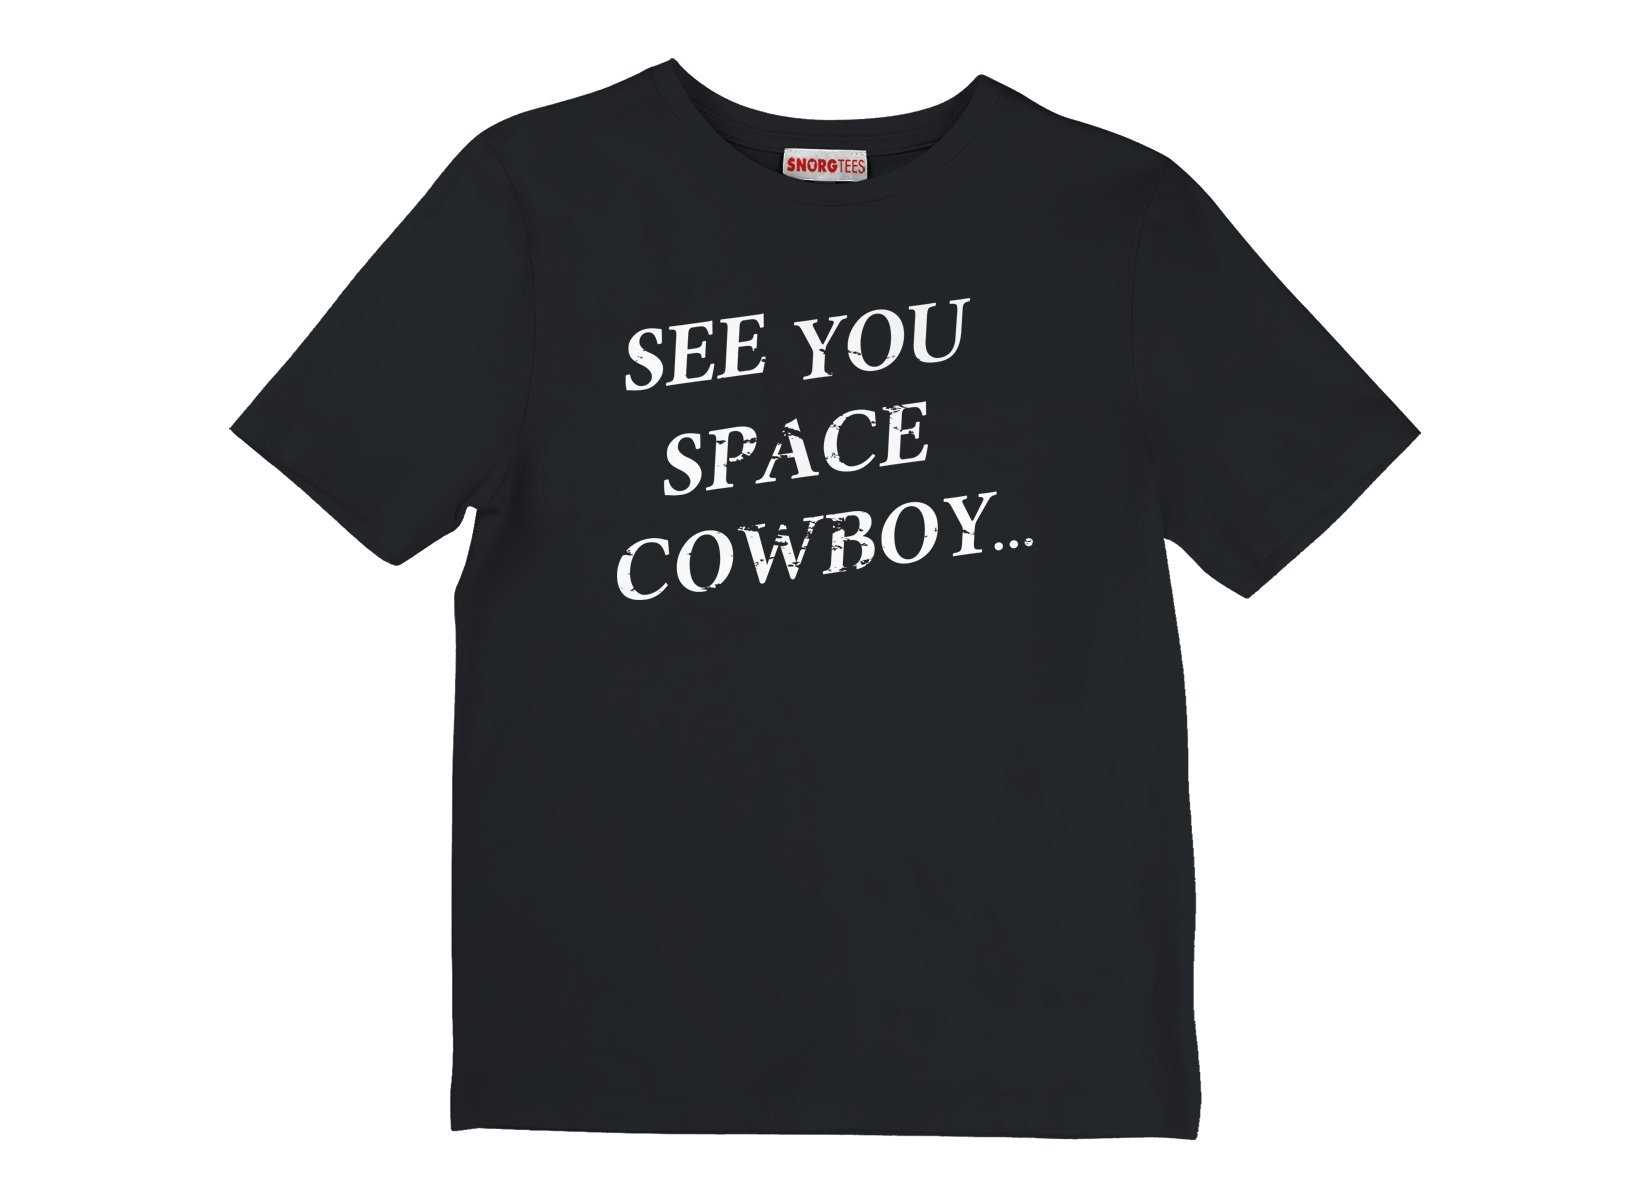 See You Space Cowboy on Kids T-Shirt